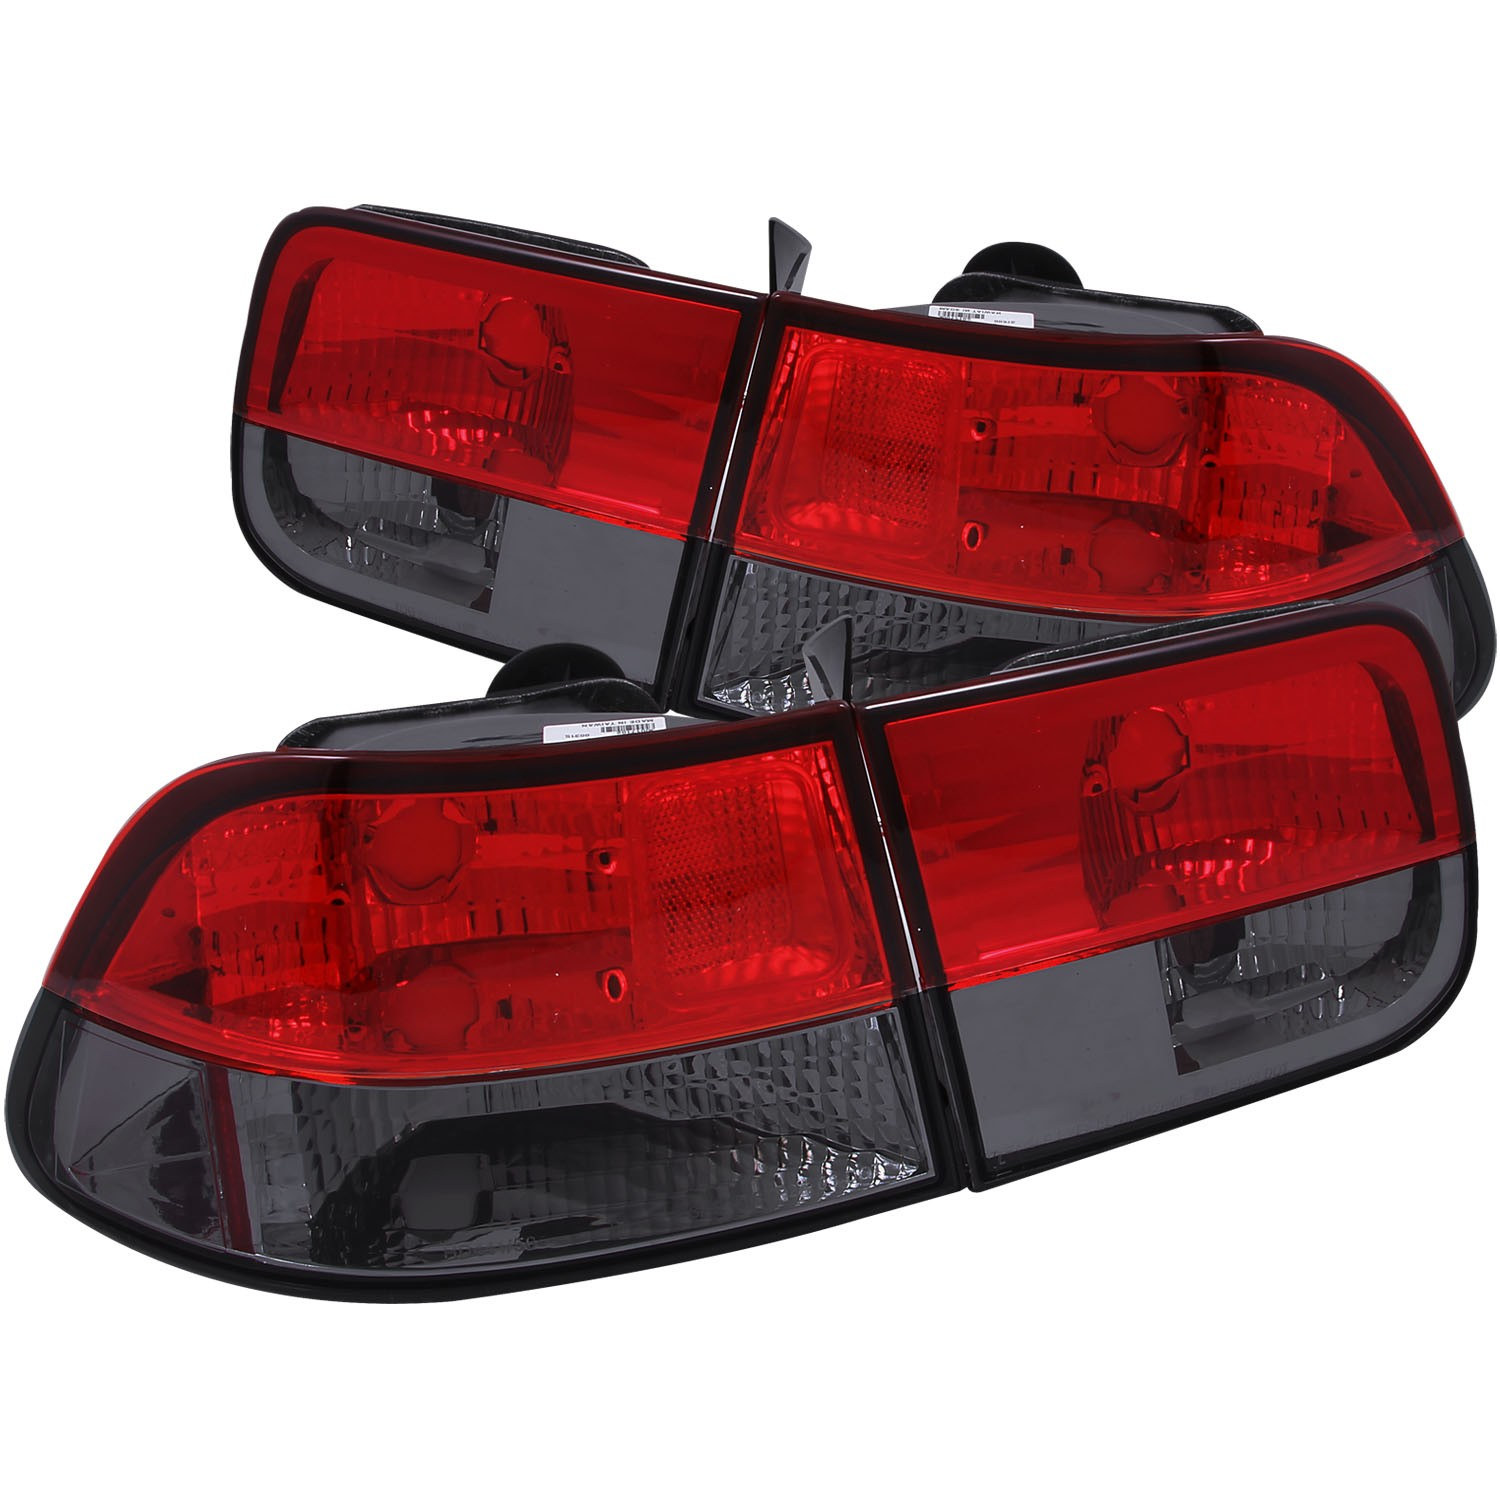 Details About 96 00 Fits Honda Civic Tail Lights Left Right Pair W Red Smoke Lens